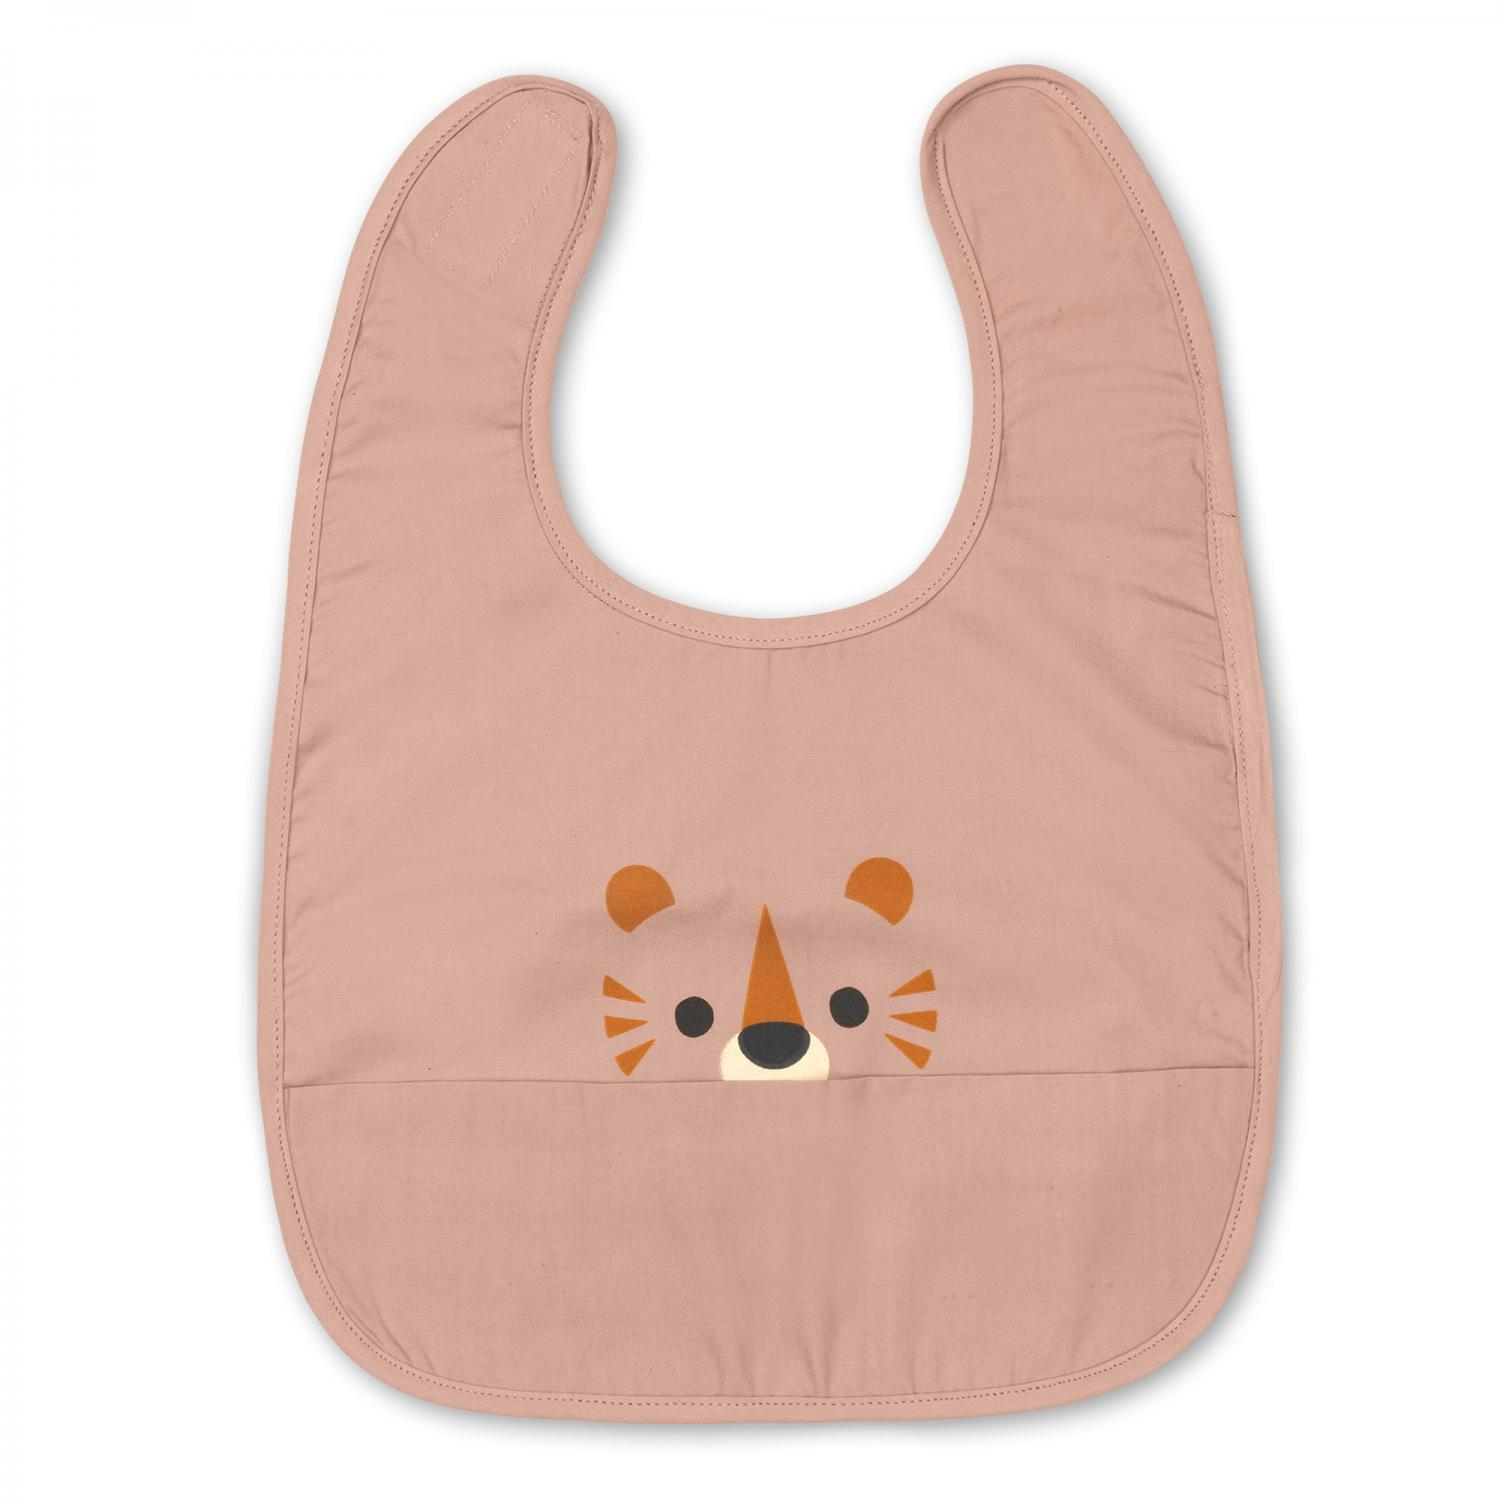 Eat rose tiger bib